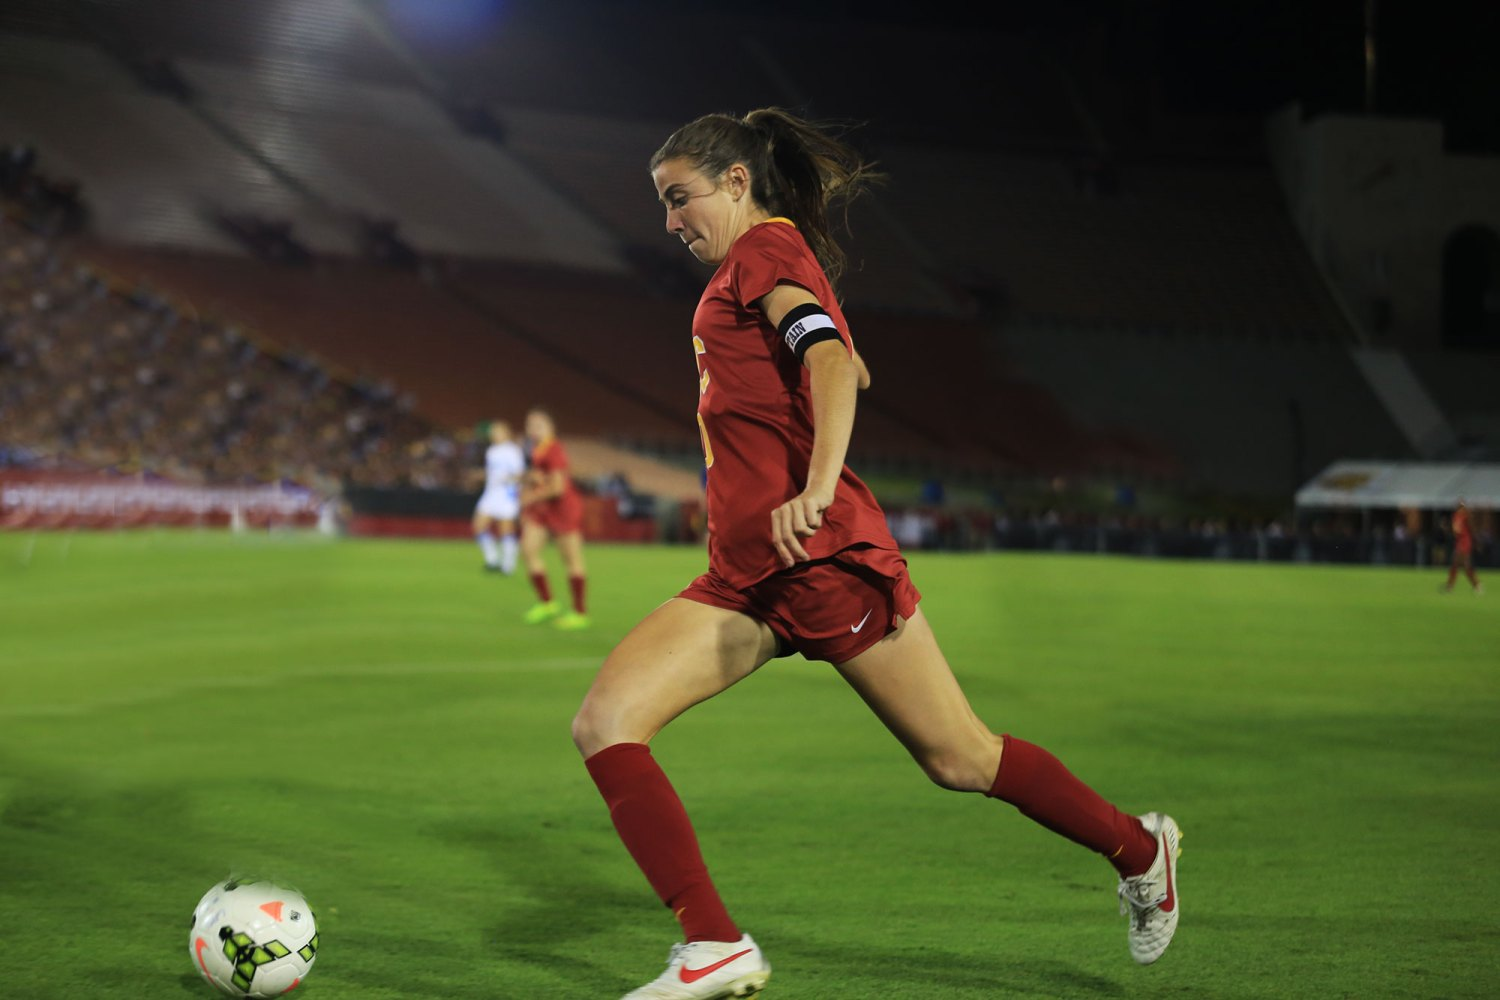 Fancy footwork · Senior midfielder Jamie Fink started all 21 games as a junior en route to earning All Pac-12 honors and will look to help her team back to the NCAA tournament in her final season.  - Kenneth Rodriguez-Clisham | Daily Trojan